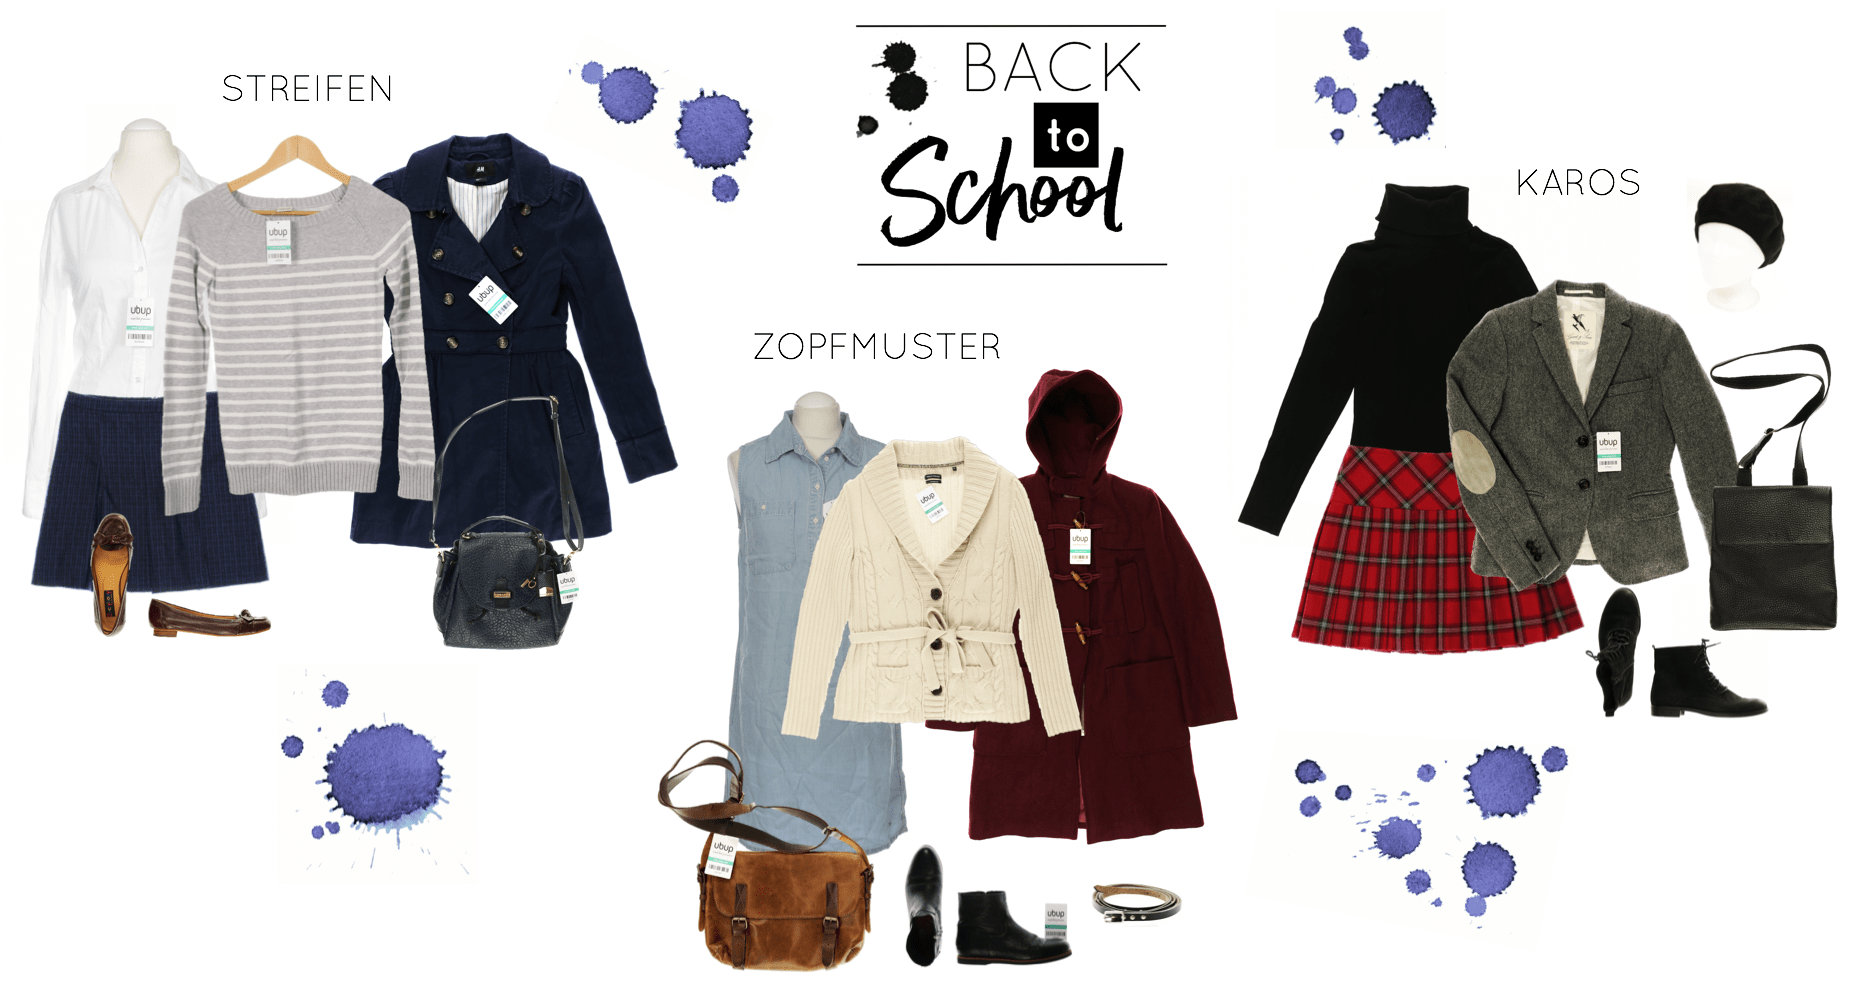 Back to School - College Look - Styles